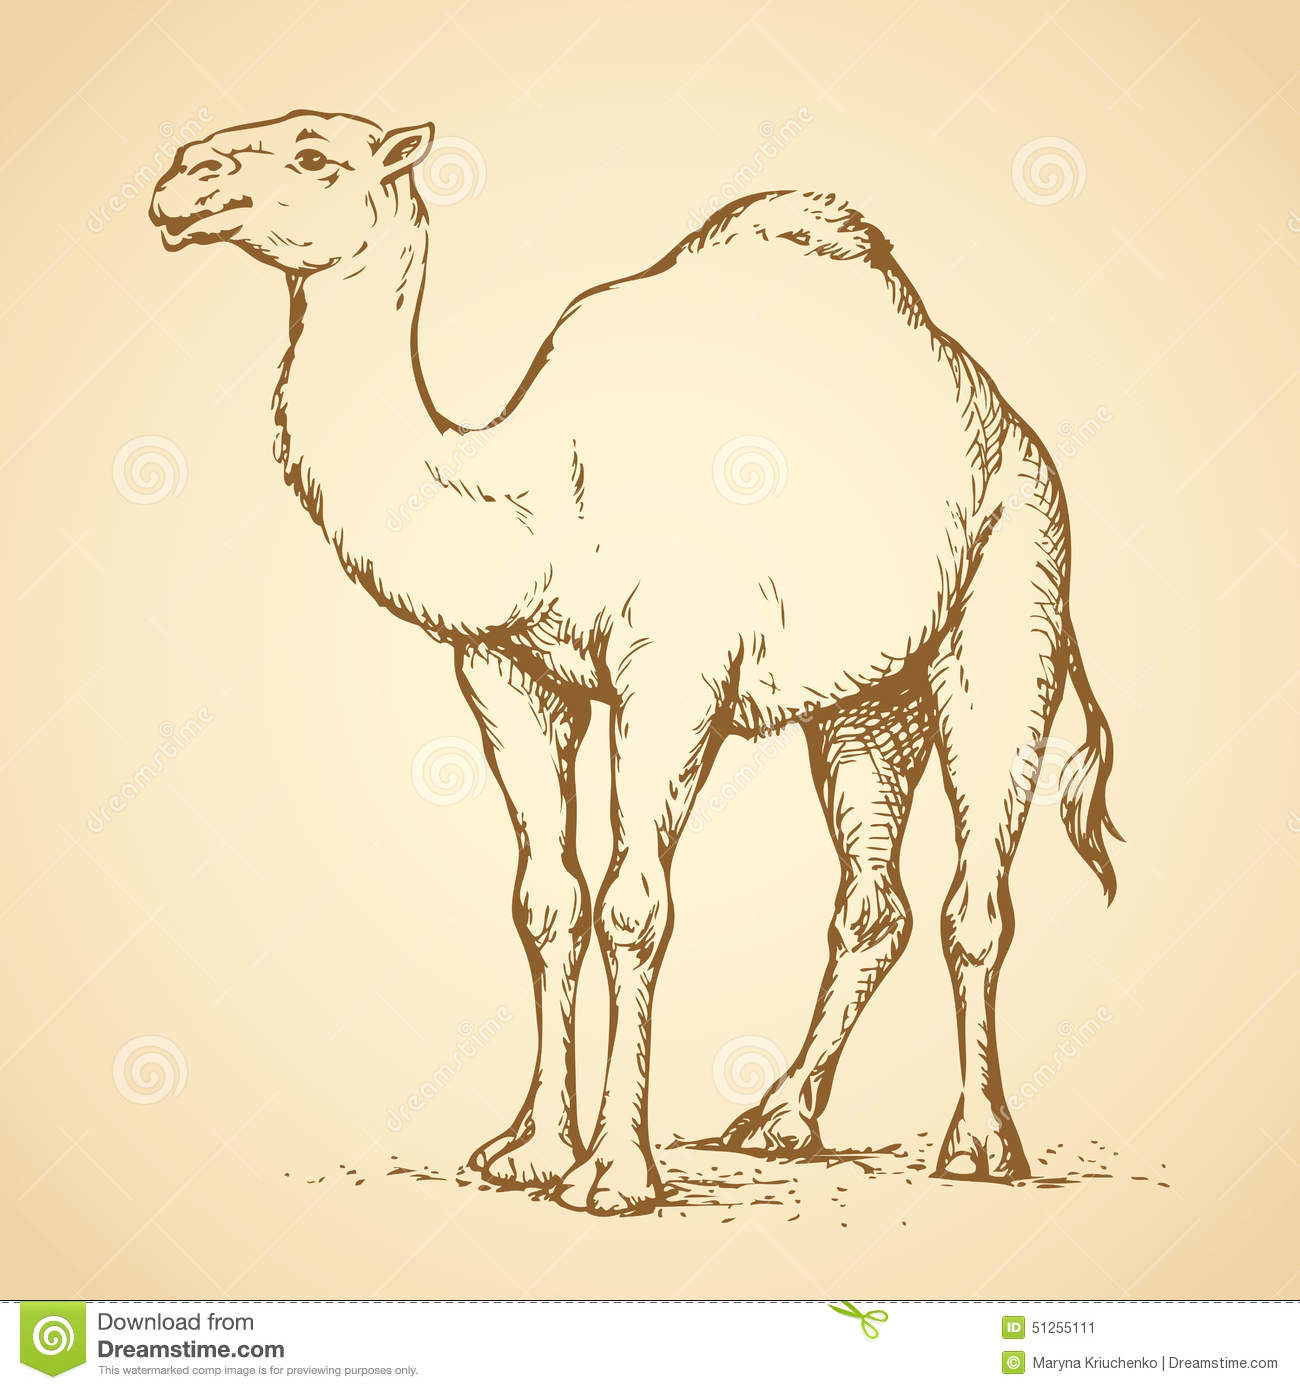 Camel vector drawing stock vector image 51255111 for 3d sketch online free